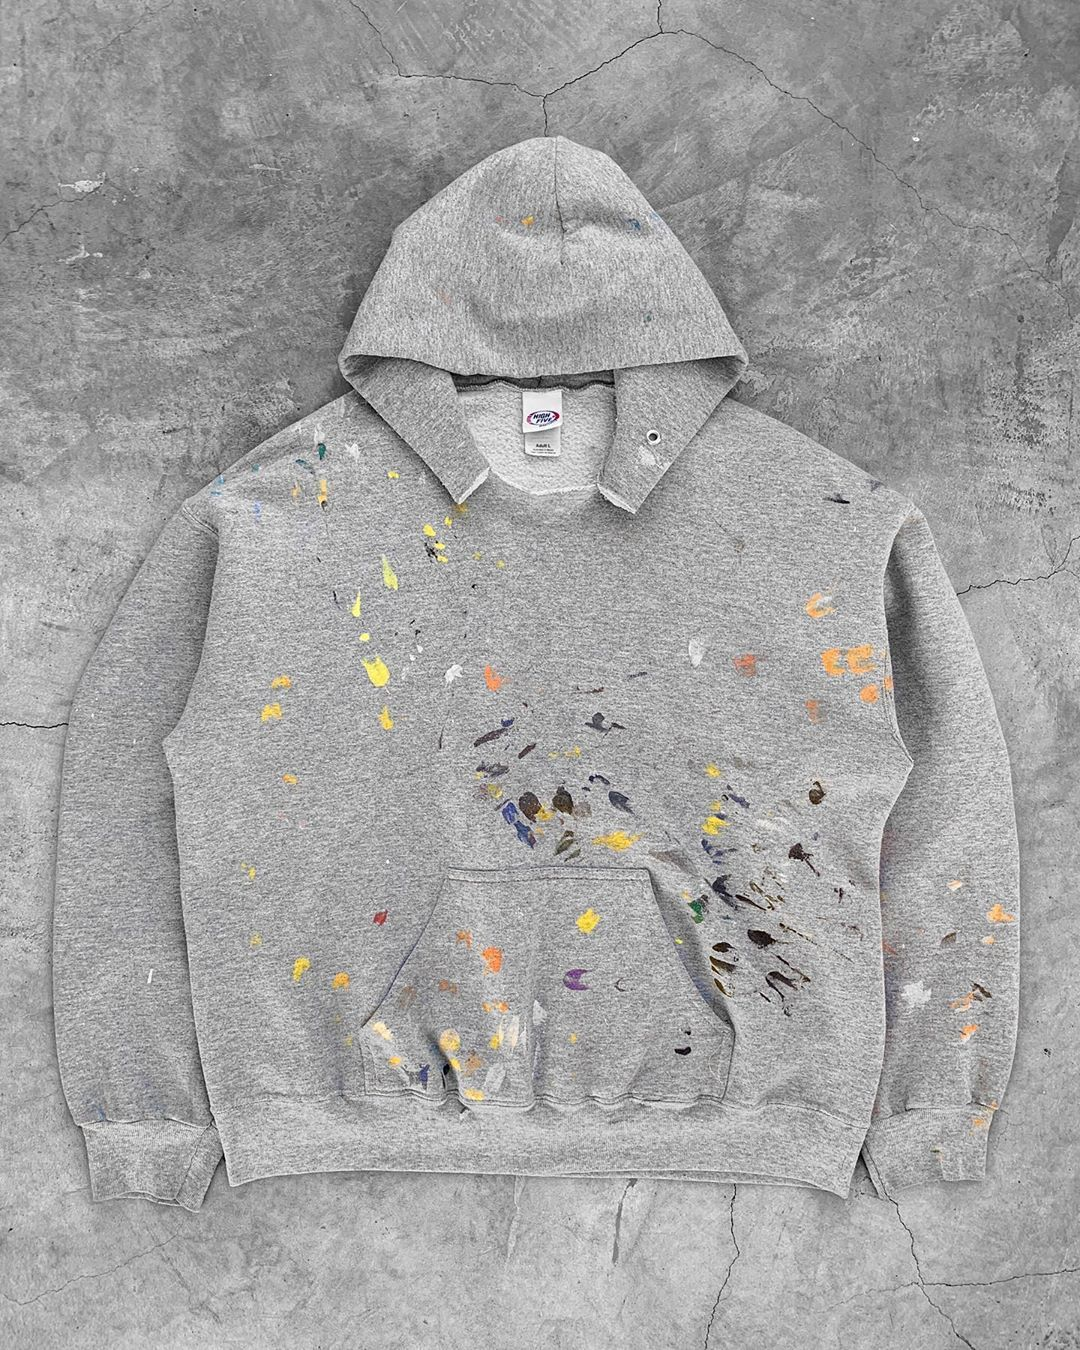 4 326 Likes 73 Comments Unsound Rags Unsoundrags On Instagram Grey Painters Hoodie 1990s Painter Hoodie Hoodies Denim Workwear